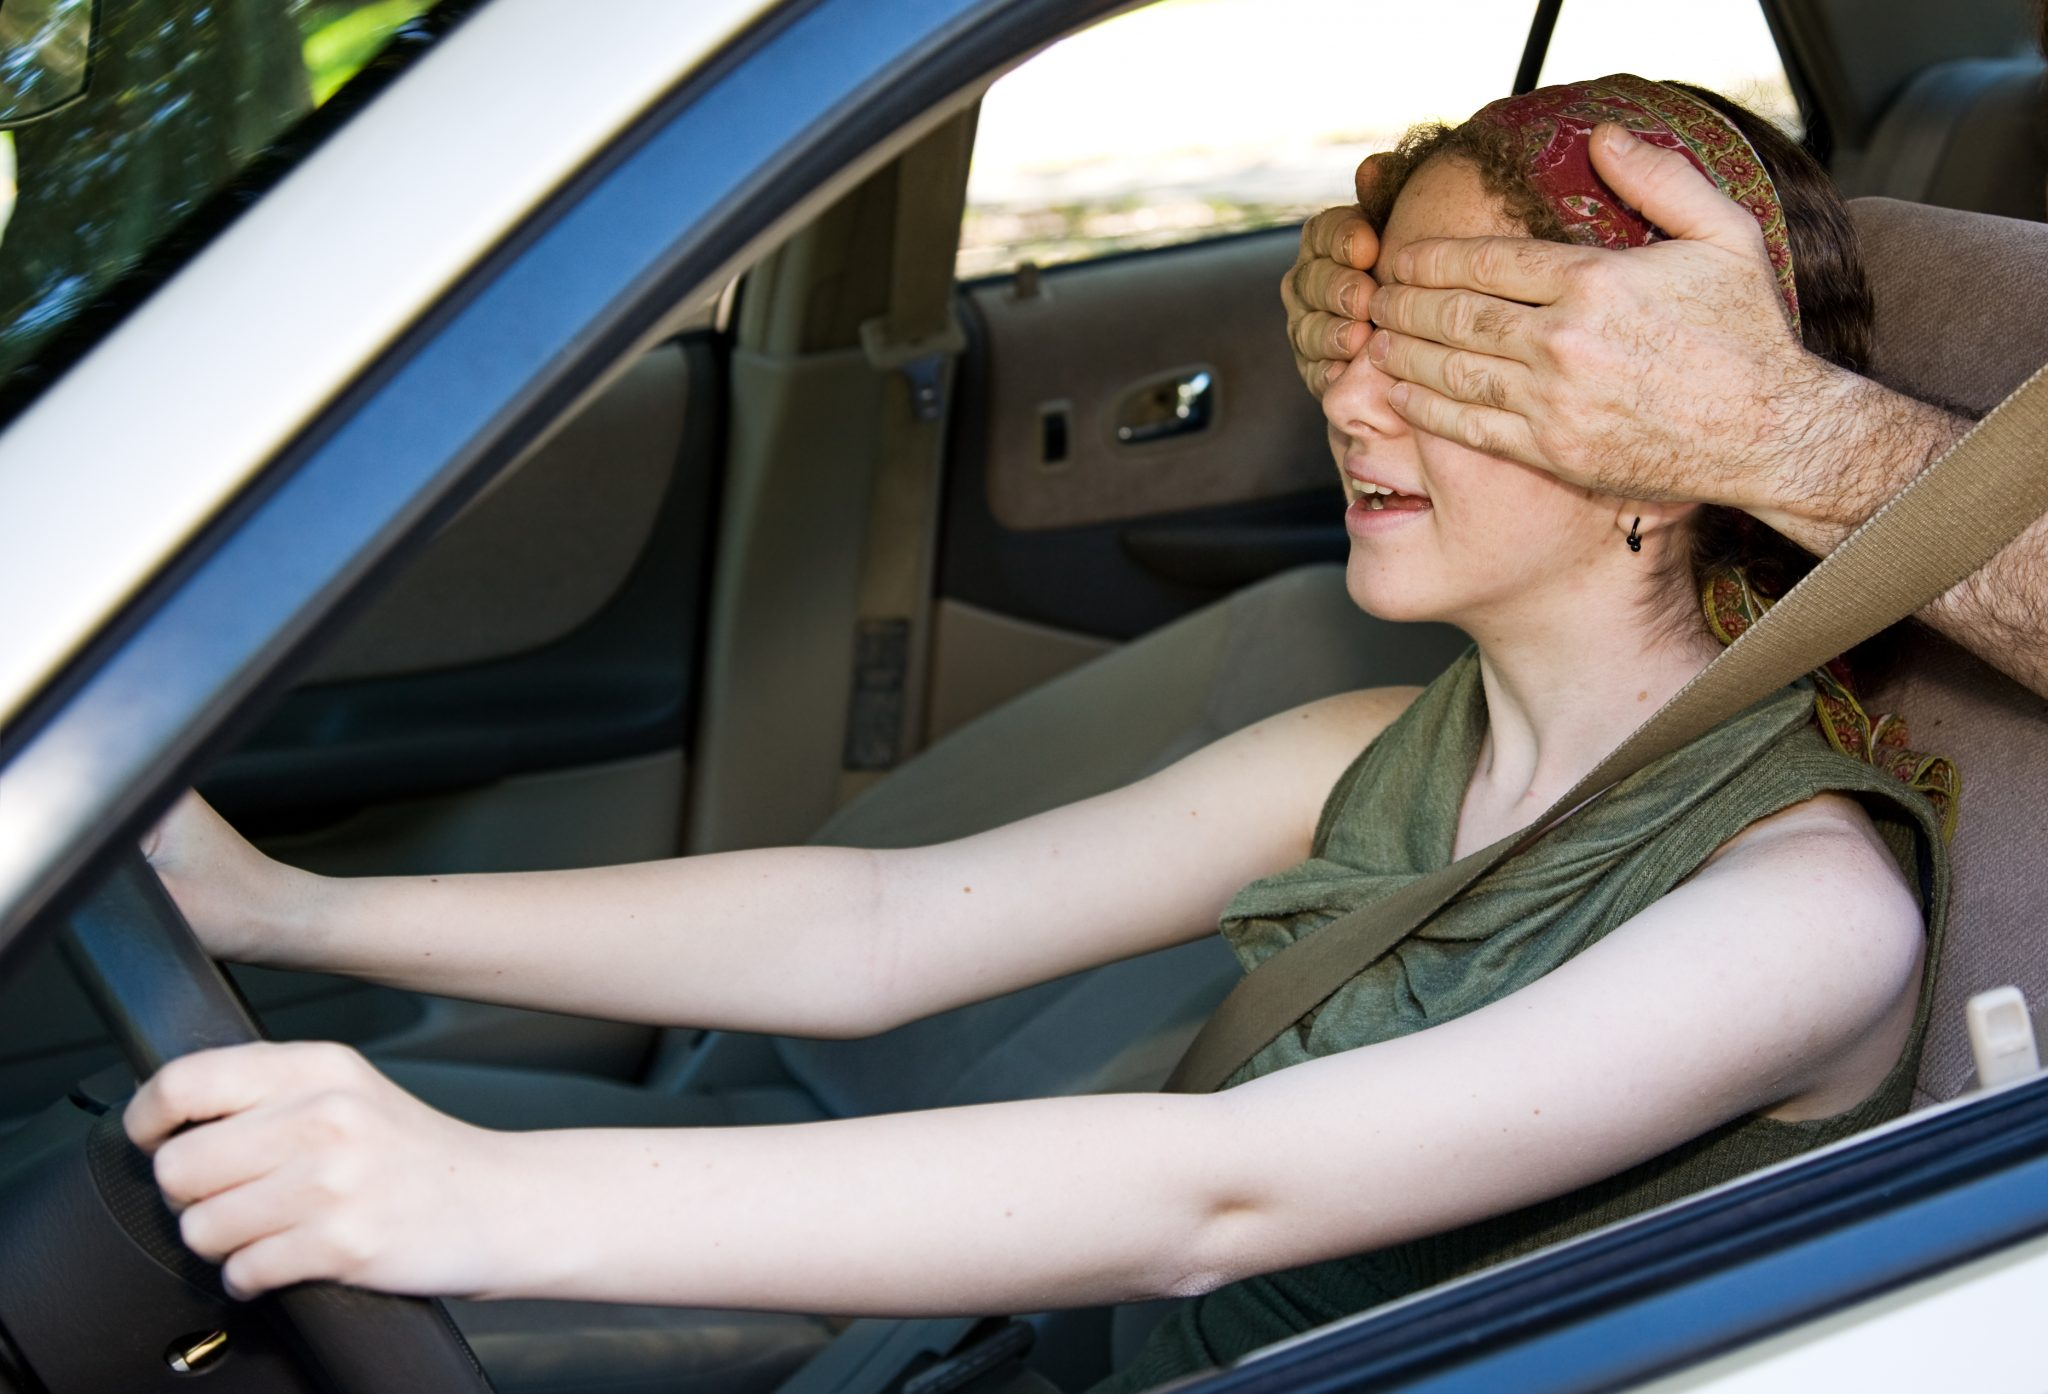 blindfolded driving | weird traffic laws